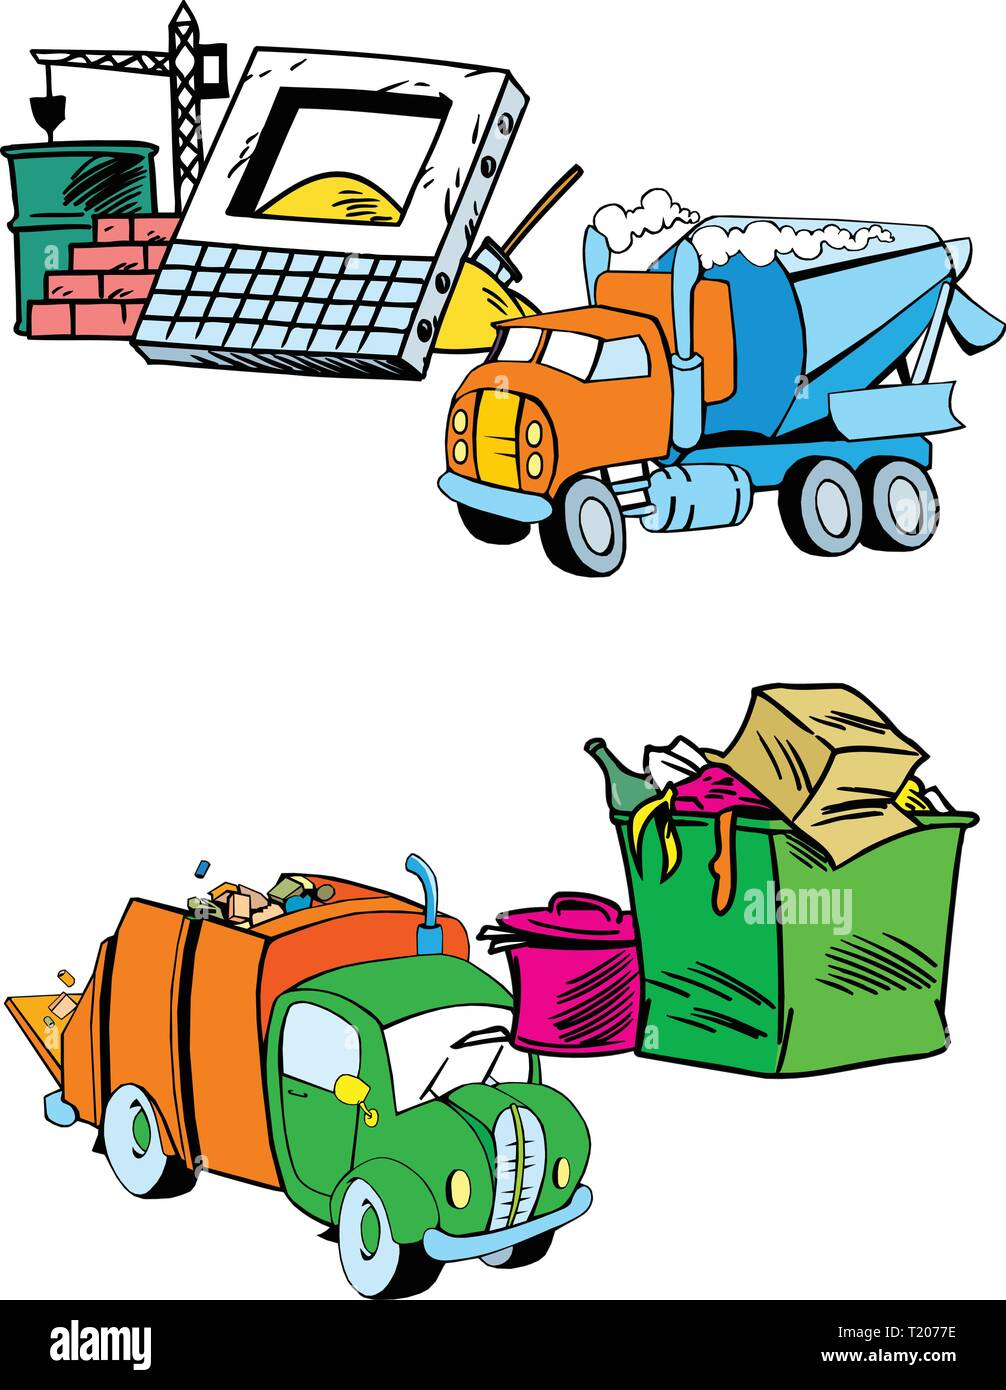 The illustration shows several modes of transport, namely garbage truck and construction equipment. Illustration done on separate layers - Stock Image